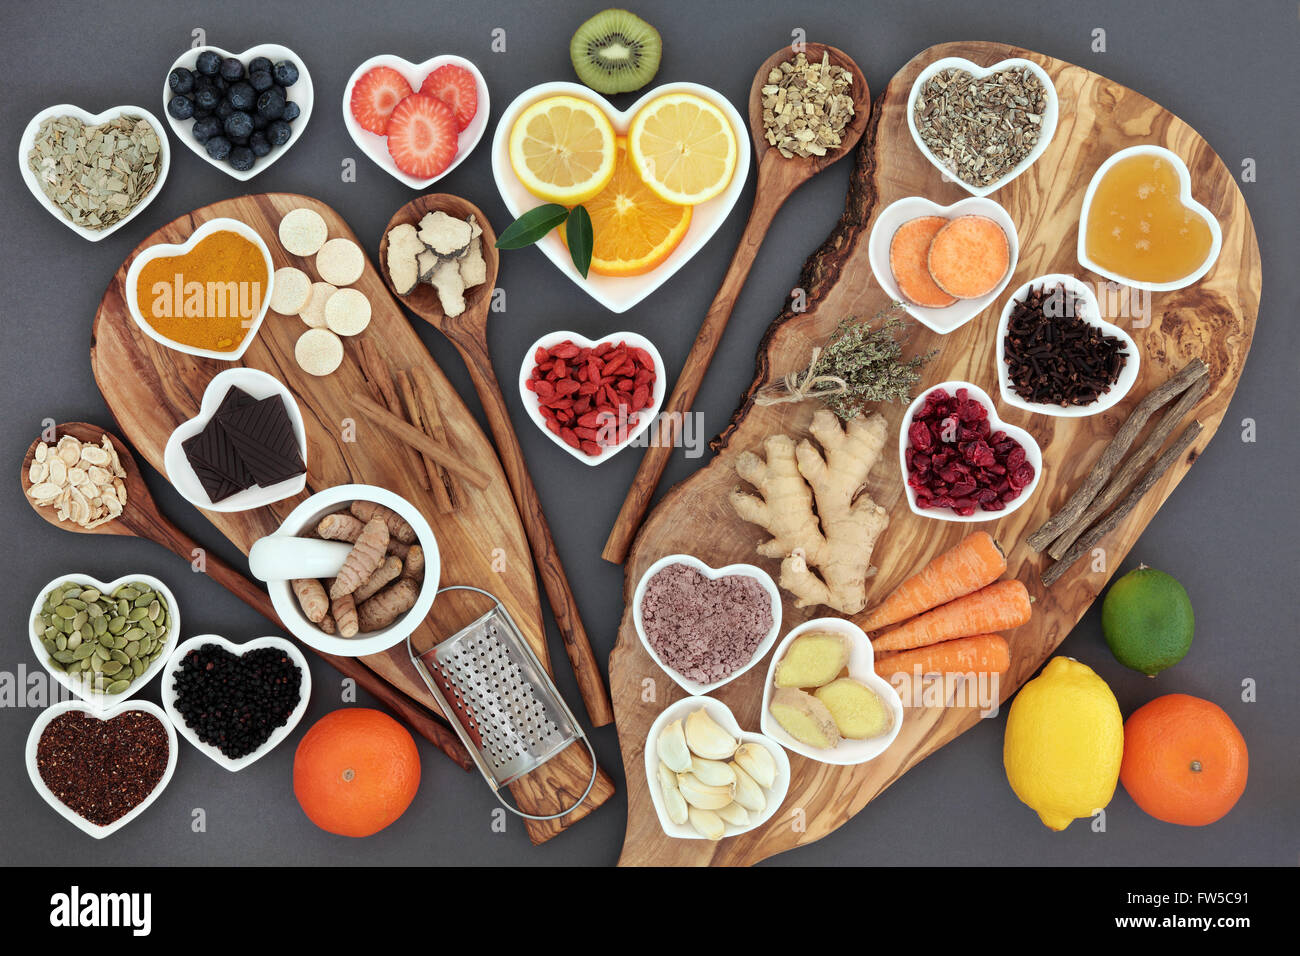 Buy herbal highs - Large Selection Of Cold And Flu Remedy Super Food And Herbal Medicine High In Antioxidants And Vitamin C